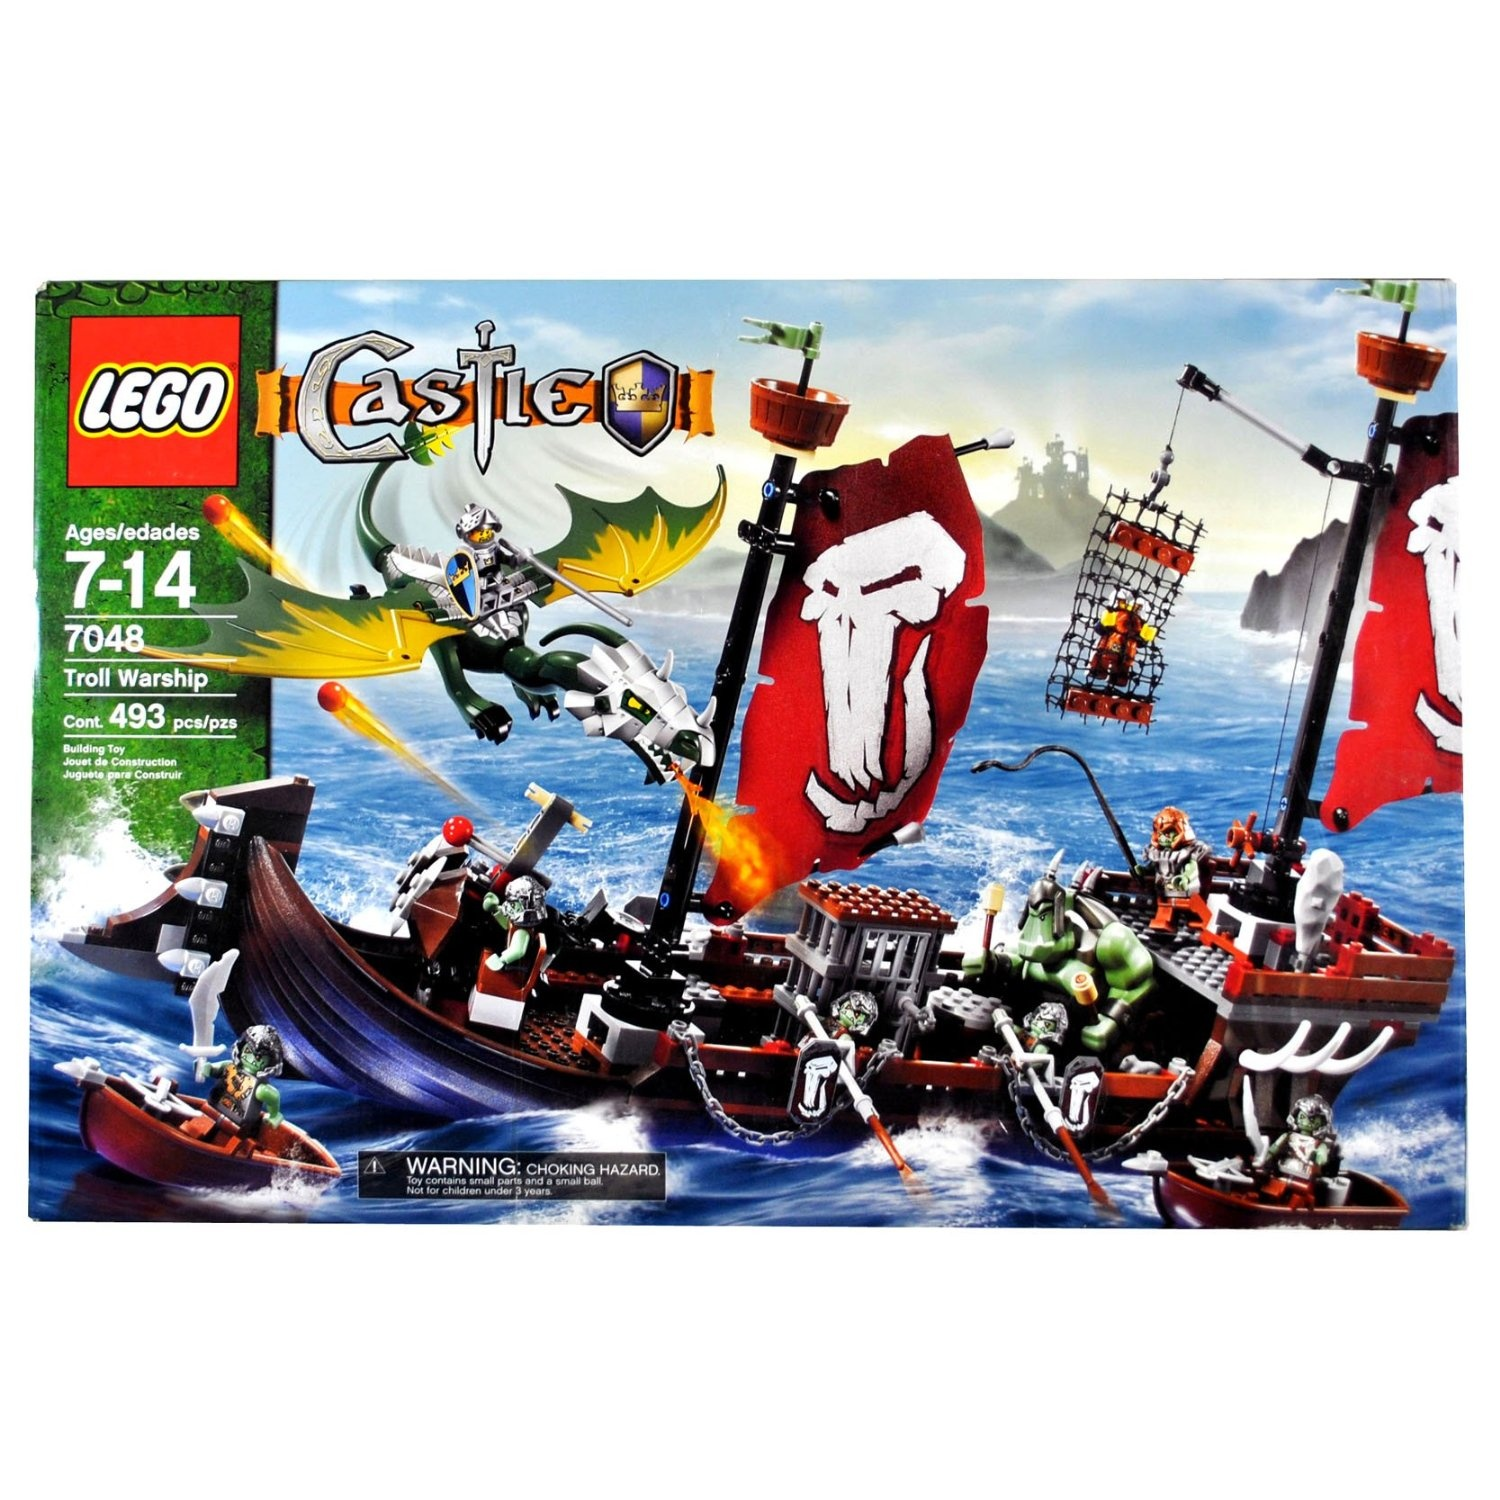 Lego Castle Toys Buy Online From Drawbridge Defense 7079